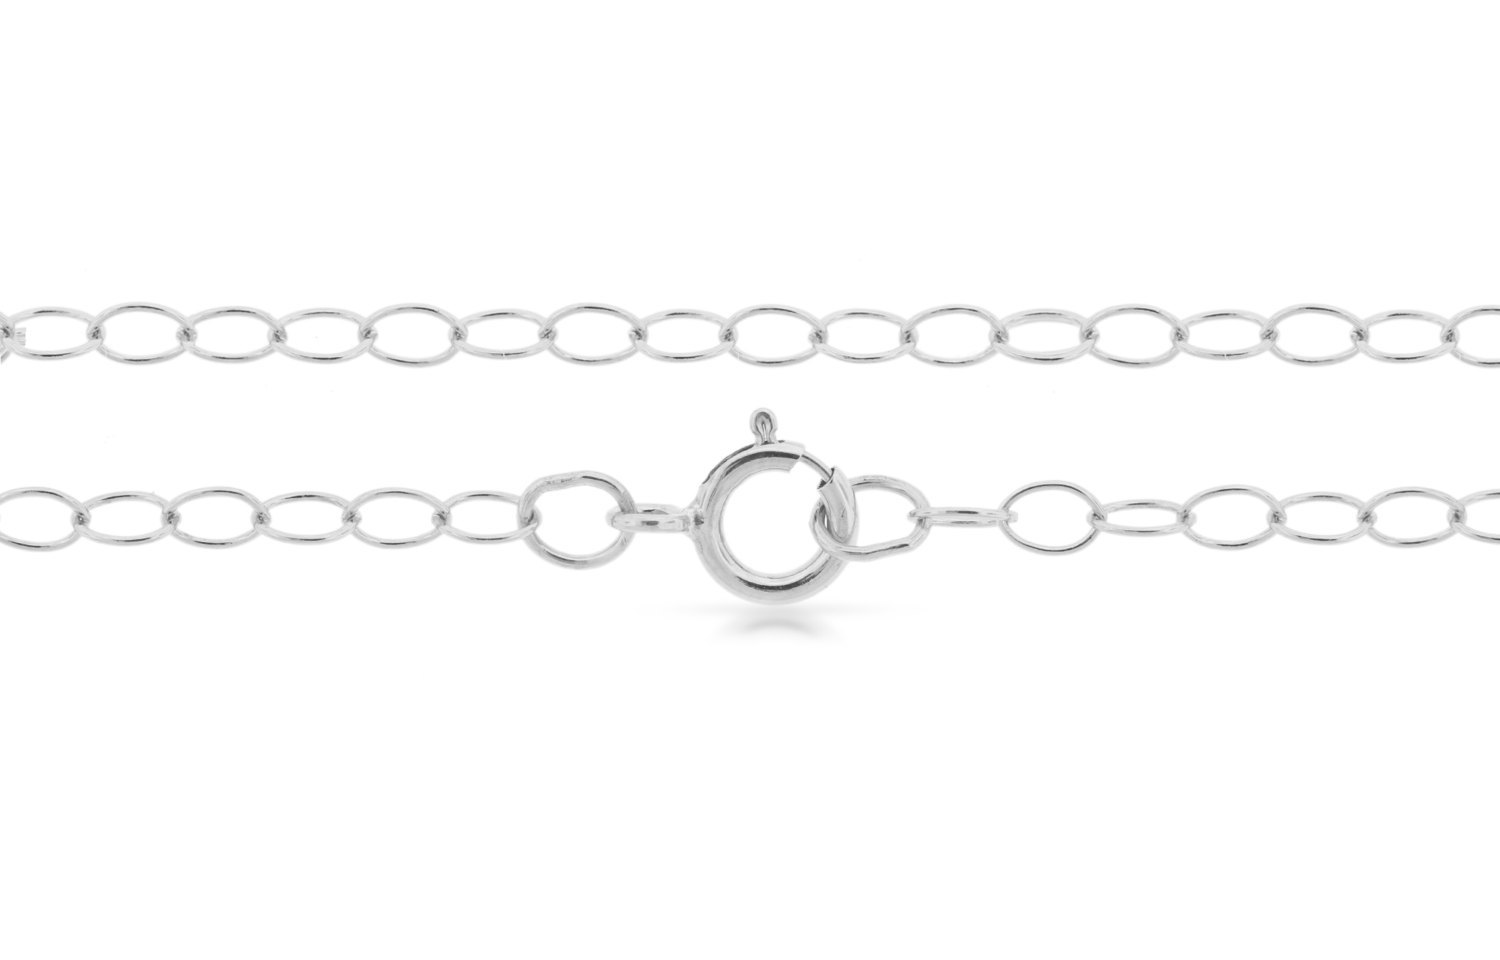 "Primary image for Chains, Cable Chain, 18"" With Clasp, Sterling Silver, 3x2mm, Pk Of 5pcs (4204)/5"